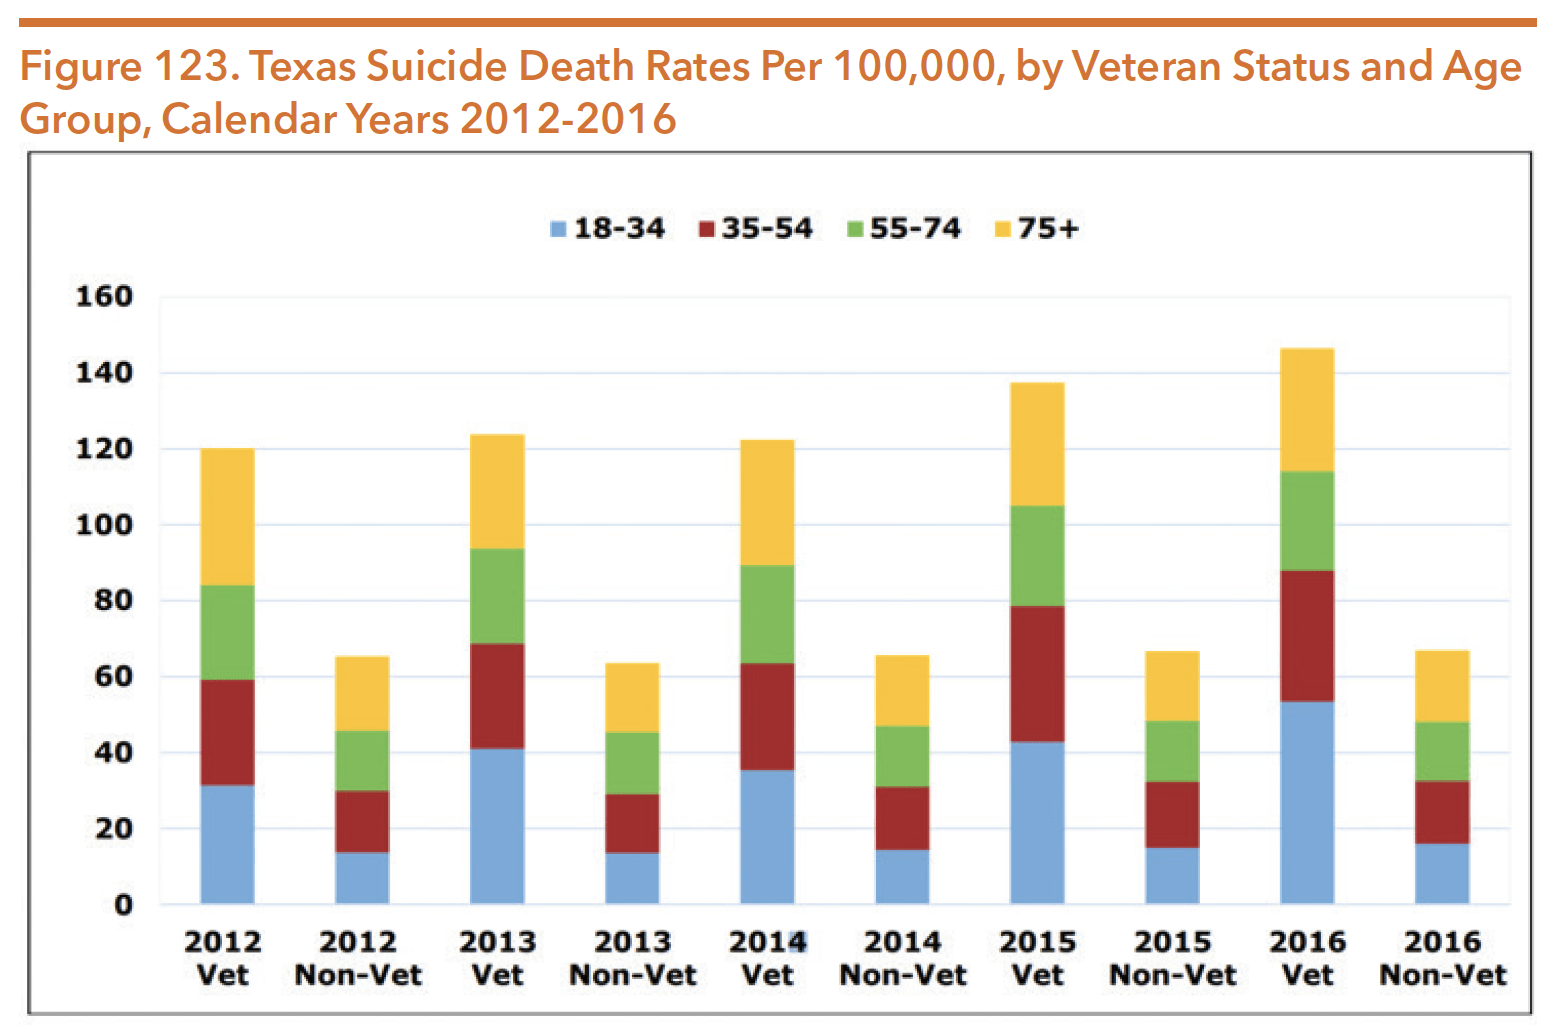 Figure 123. Texas Suicide Death Rates Per 100,000, by Veteran Status and Age Group, Calendar Years 2012-2016